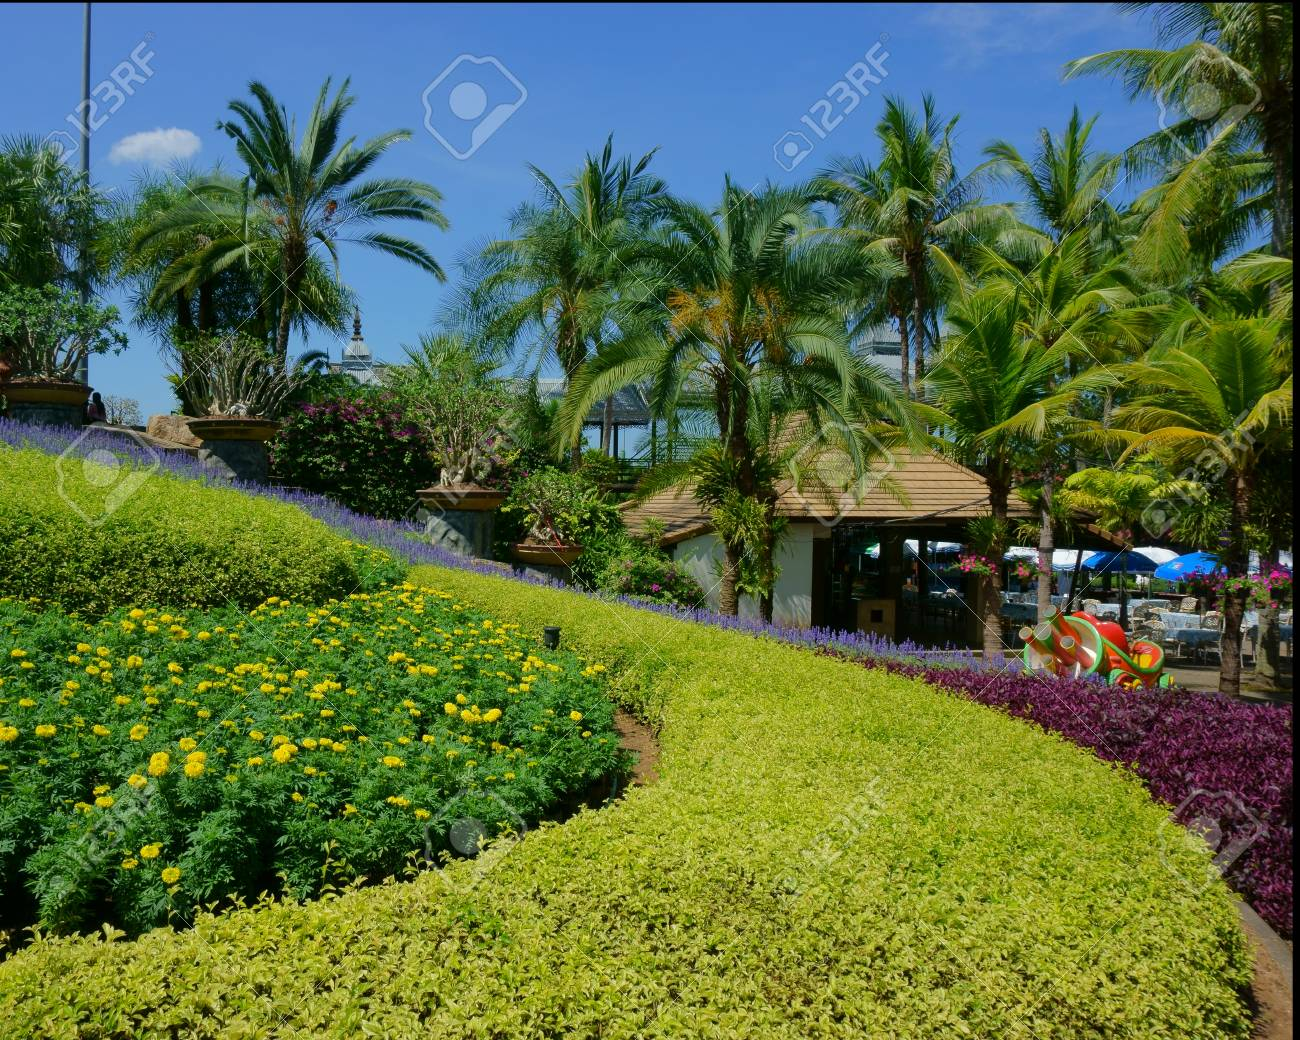 Beautiful Flower Beds In The Park Stock Photo Picture And Royalty